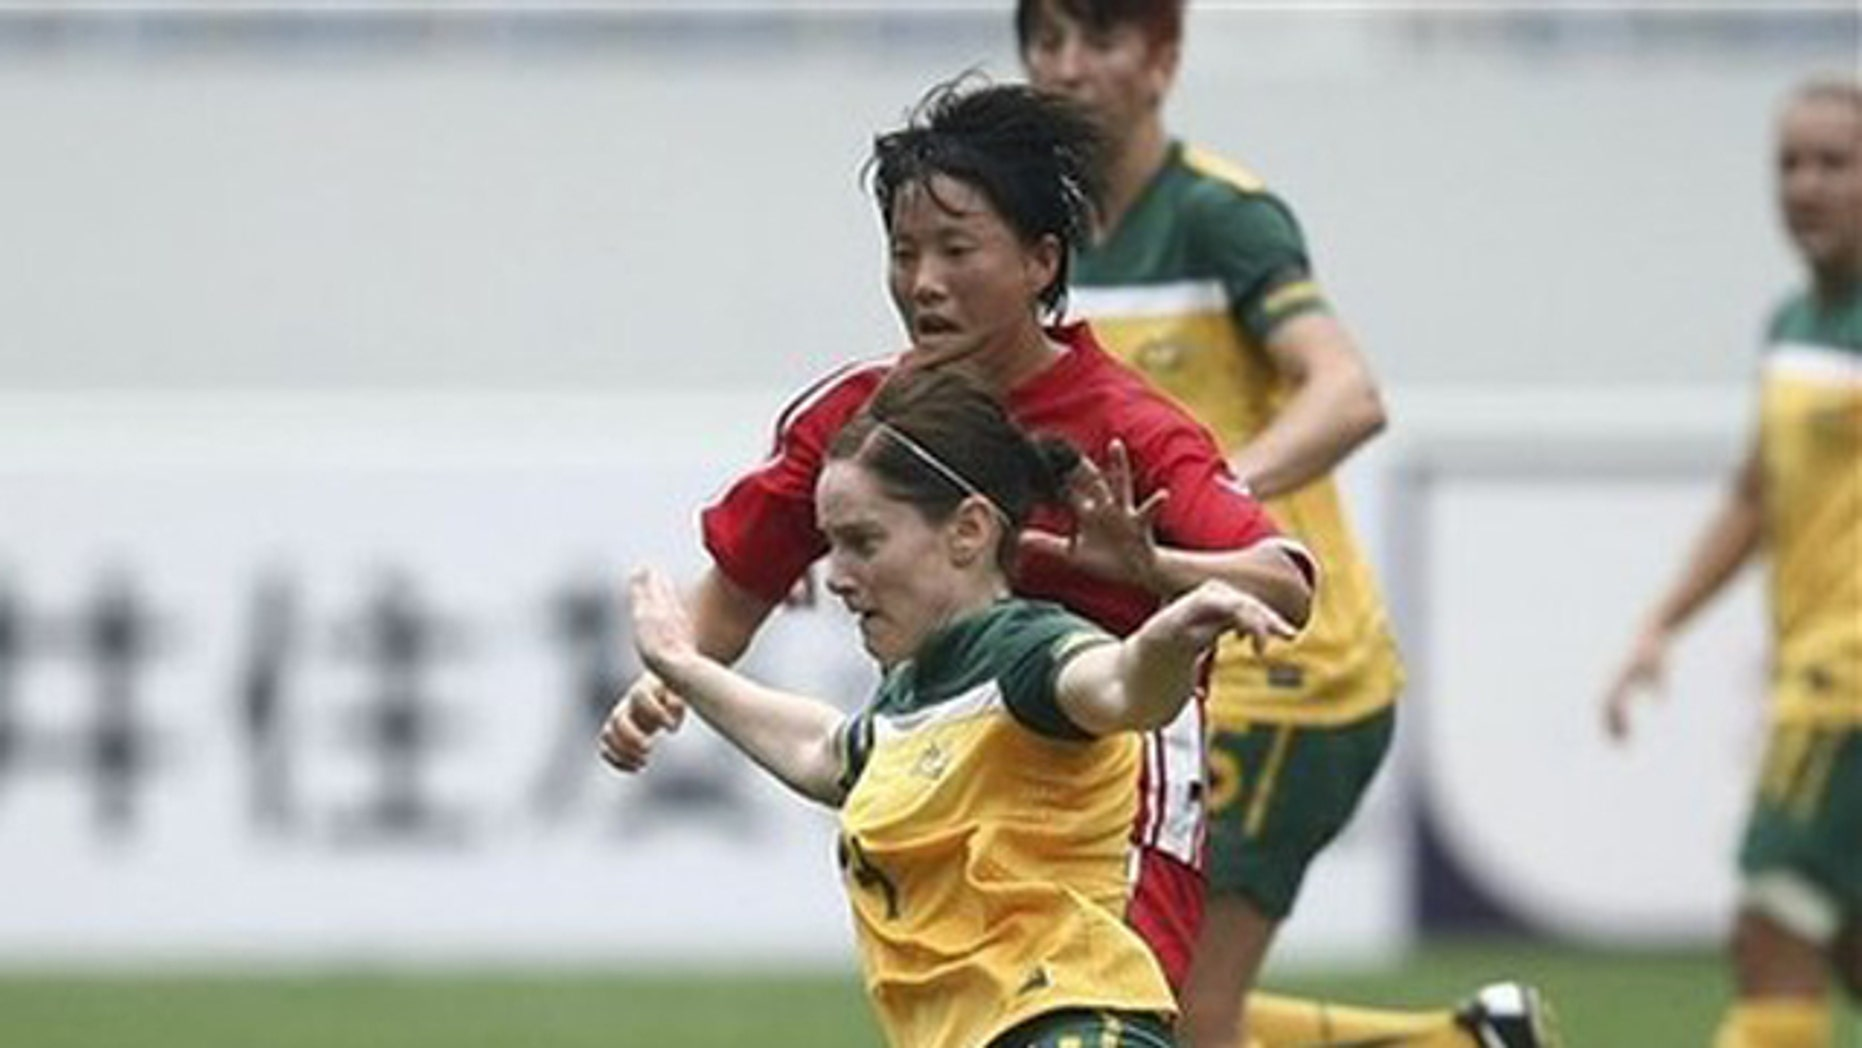 Sept. 1, 2011: Australian Collette McCallum, foreground, and Ri Ye Gyong of North Korea wrestle for the ball during their women's qualifying soccer tournament for the 2012 Olympic Games in Jinan, China.